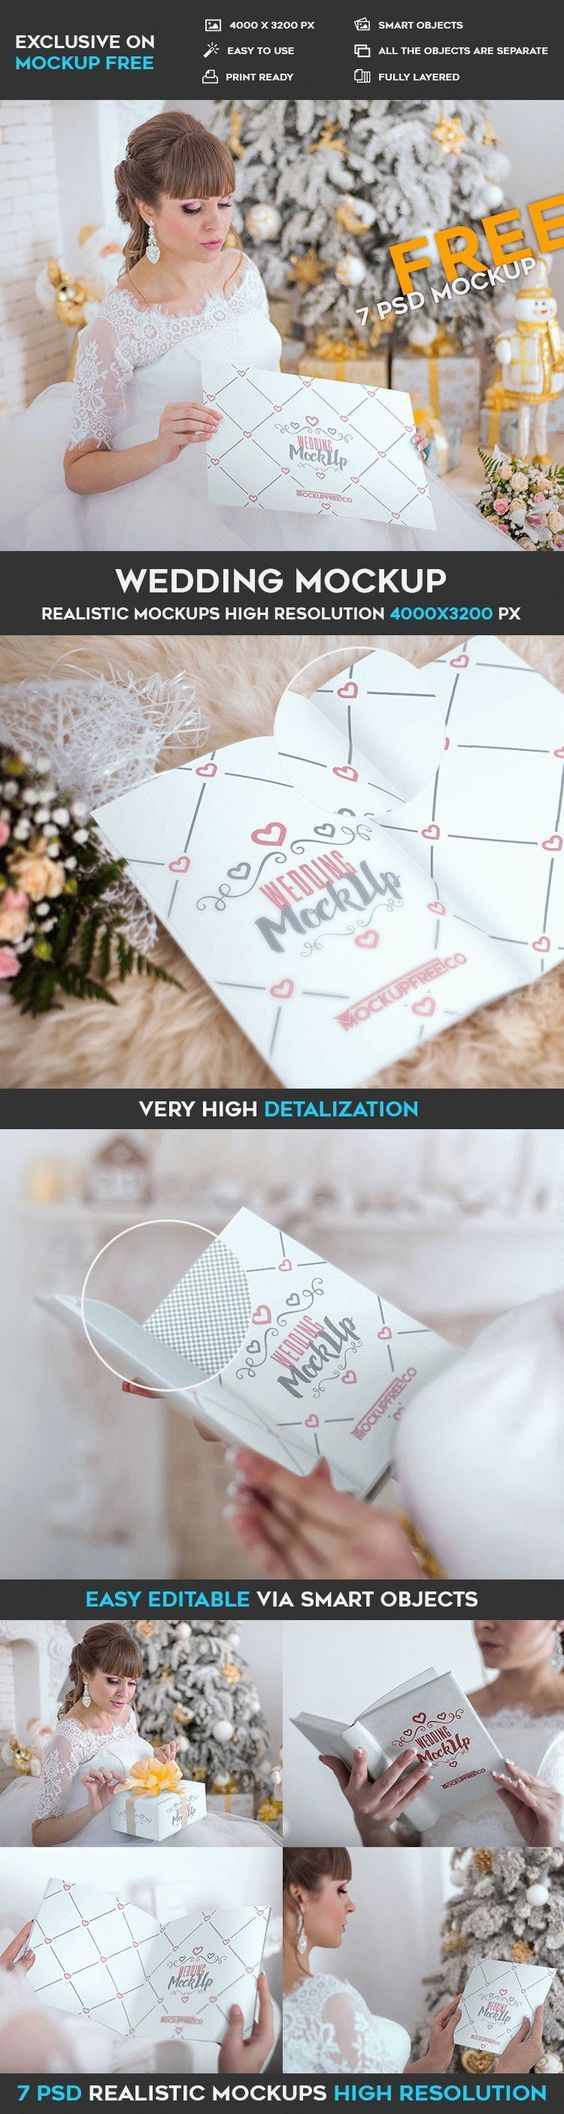 7 Free Wedding Invitation, Poster, Book PSD Mockups | Free PSD ...